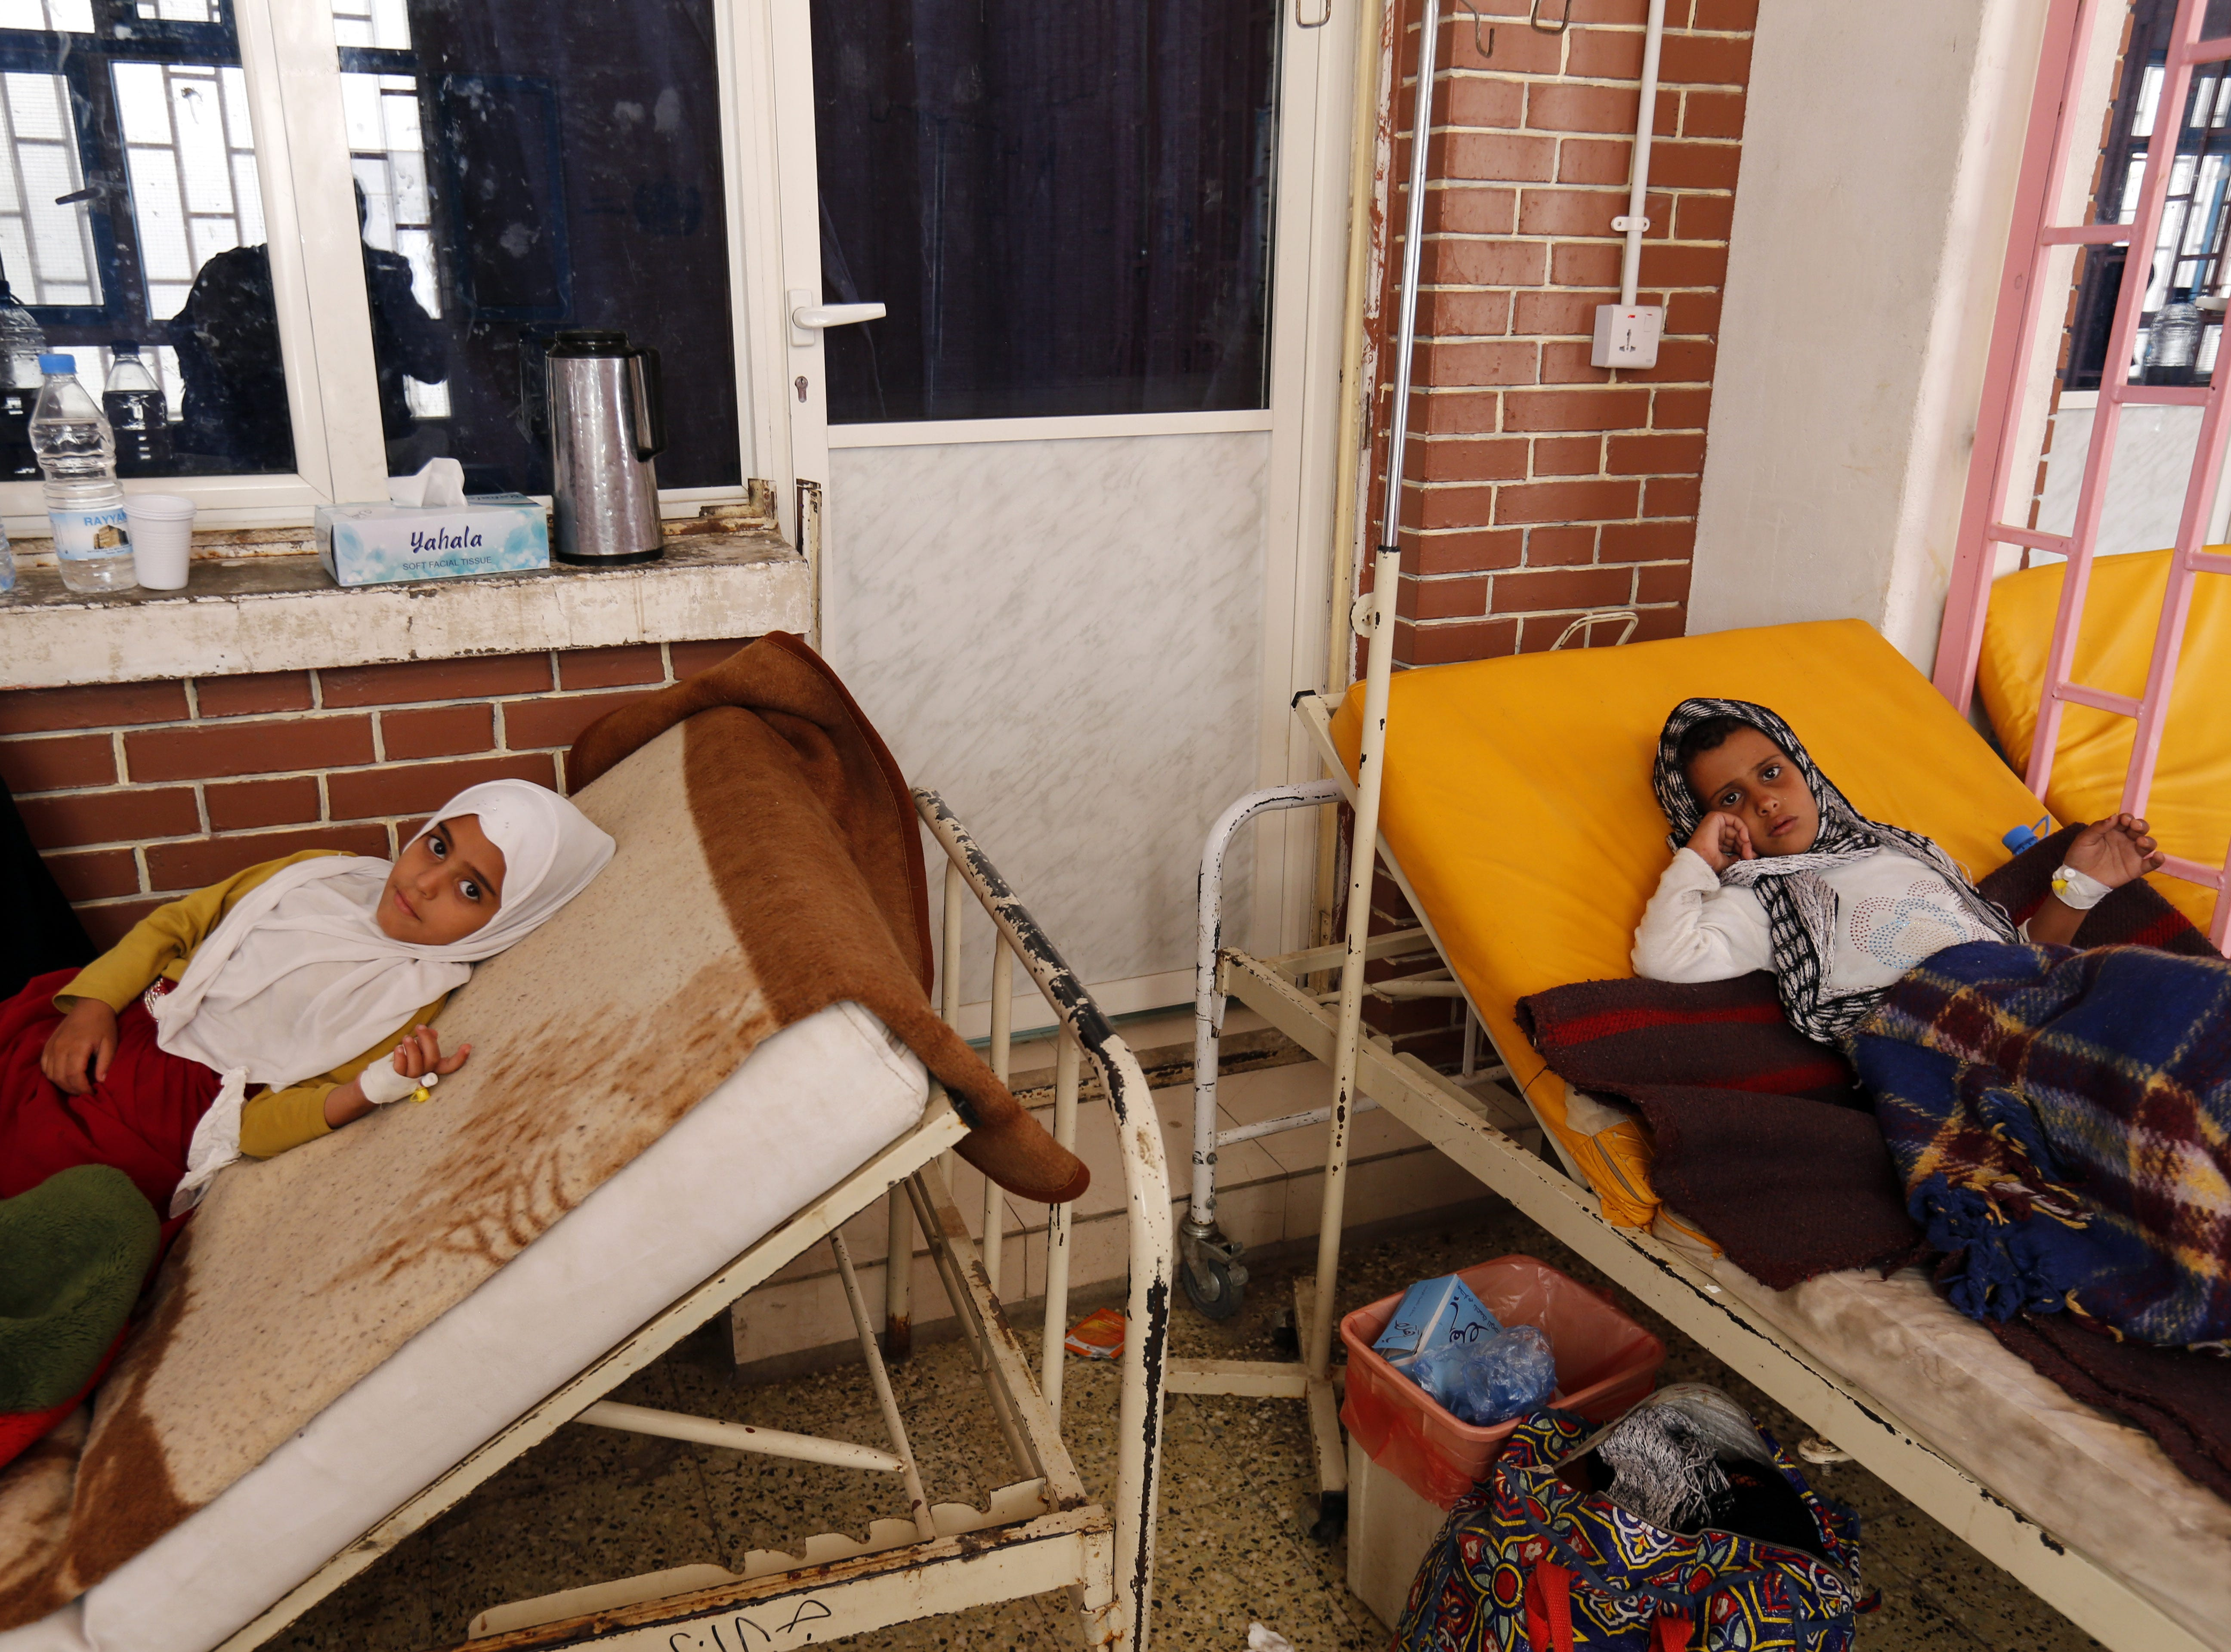 Two cholera-infected children receive treatment at a cholera treatment center amid a cholera outbreak, in Sana'a, Yemen on April 20, 2019.